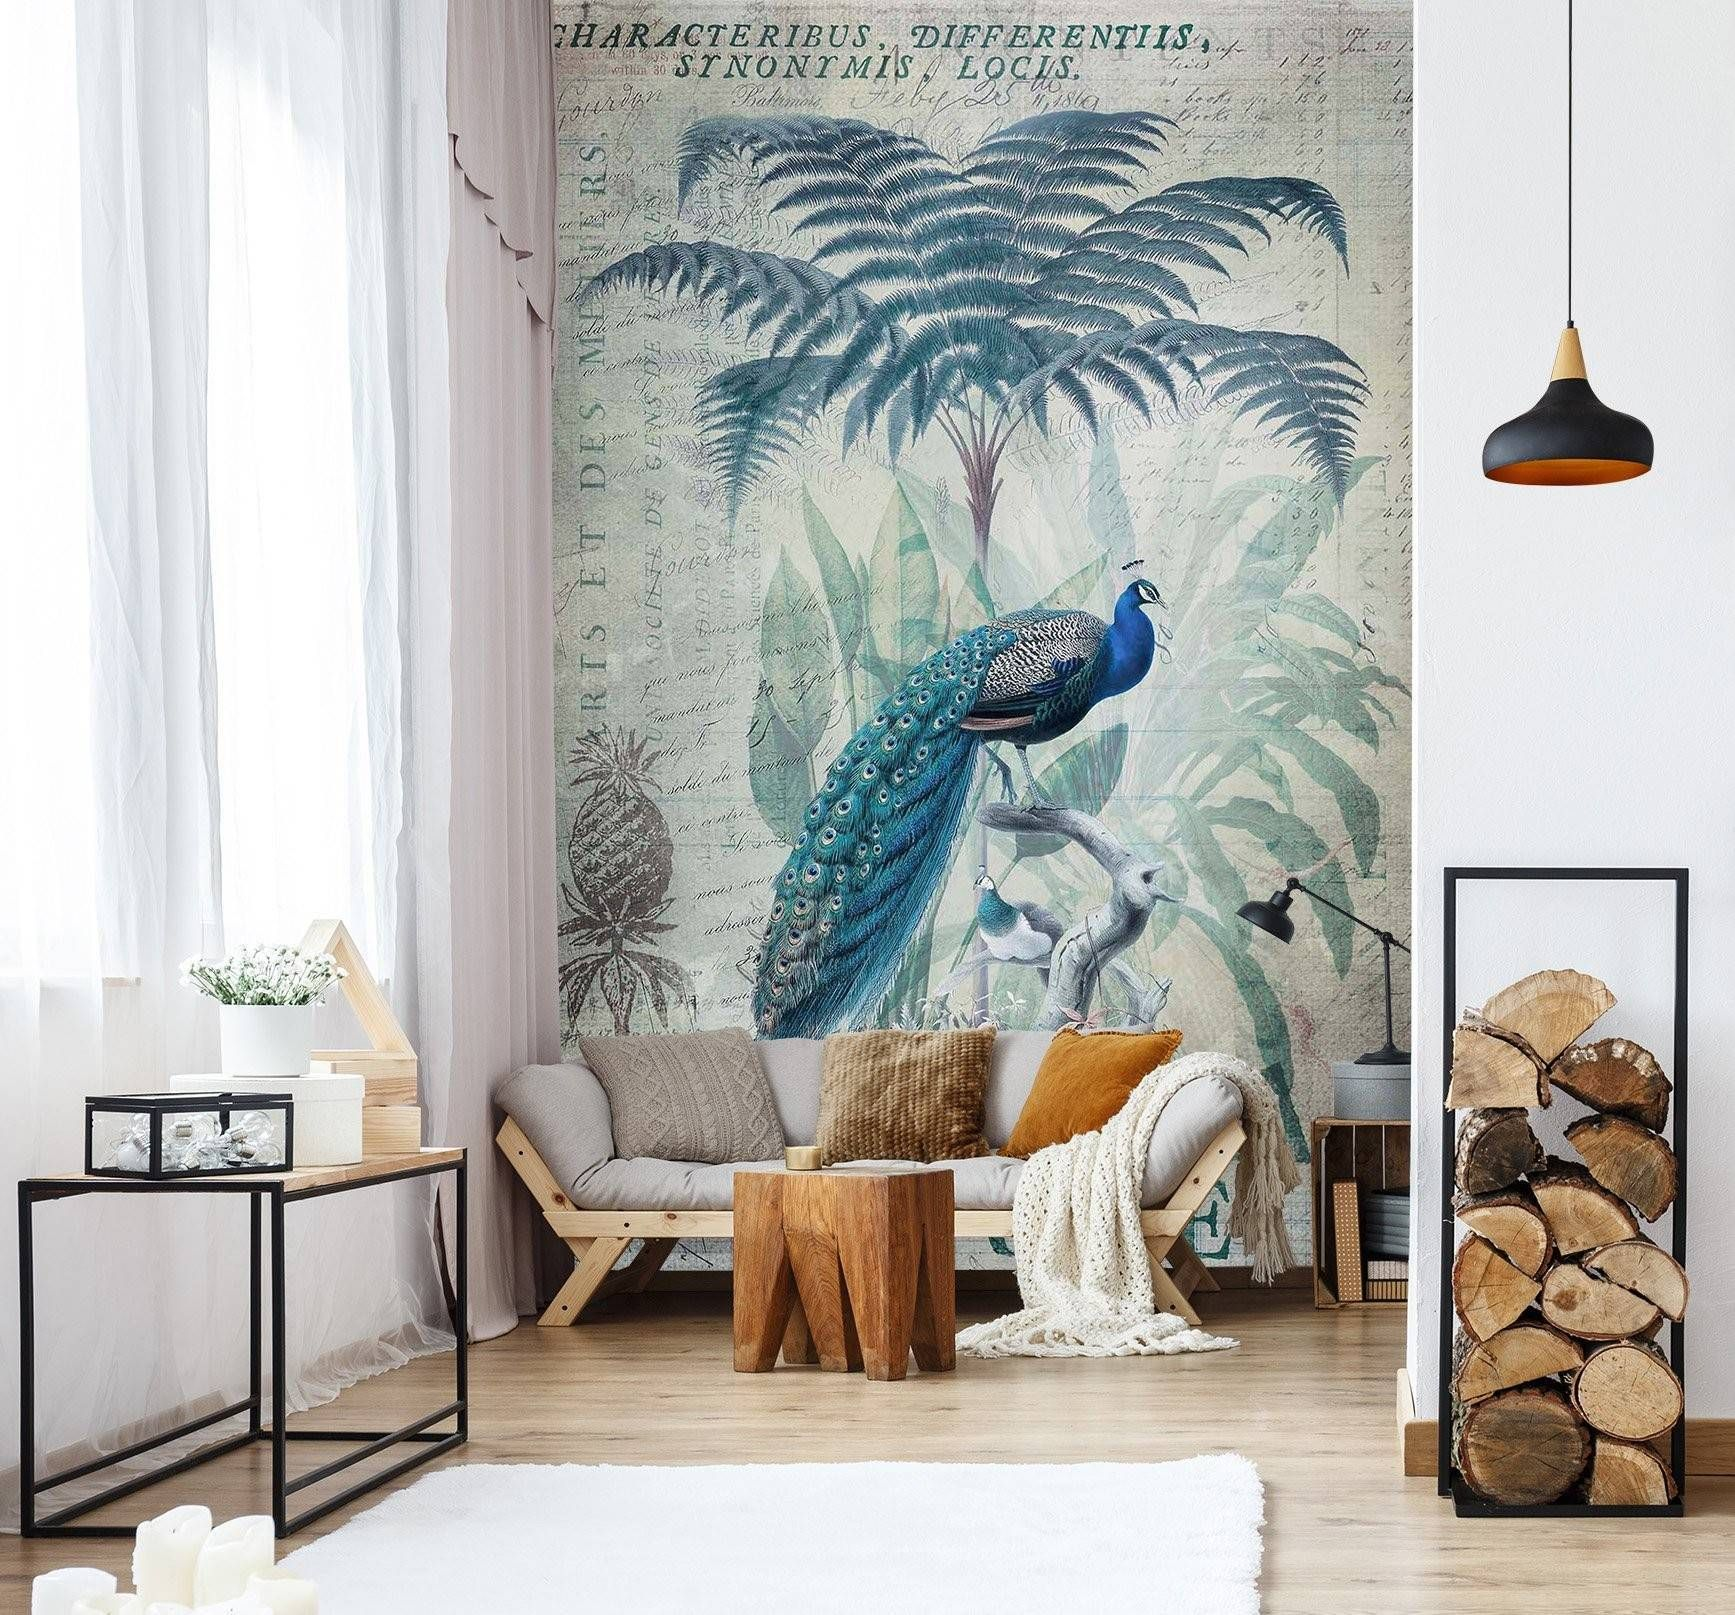 3D Forest Peacock 1027 Andrea haase Wall Mural Wall Murals Dai